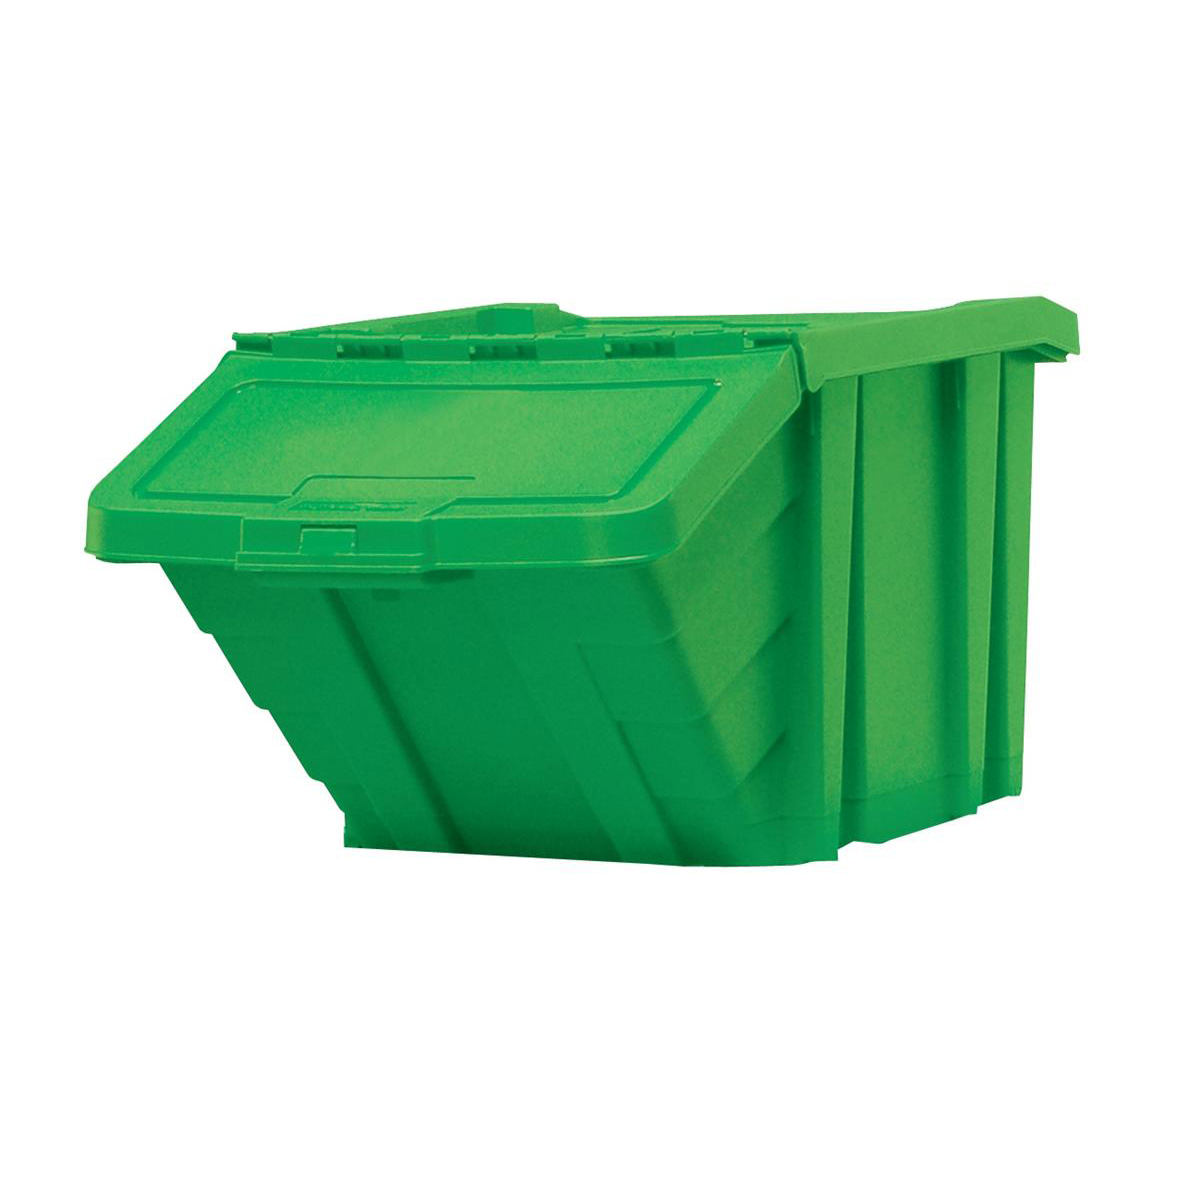 Containers Recycle Storage Bin and Lid Green 400x635x345mm